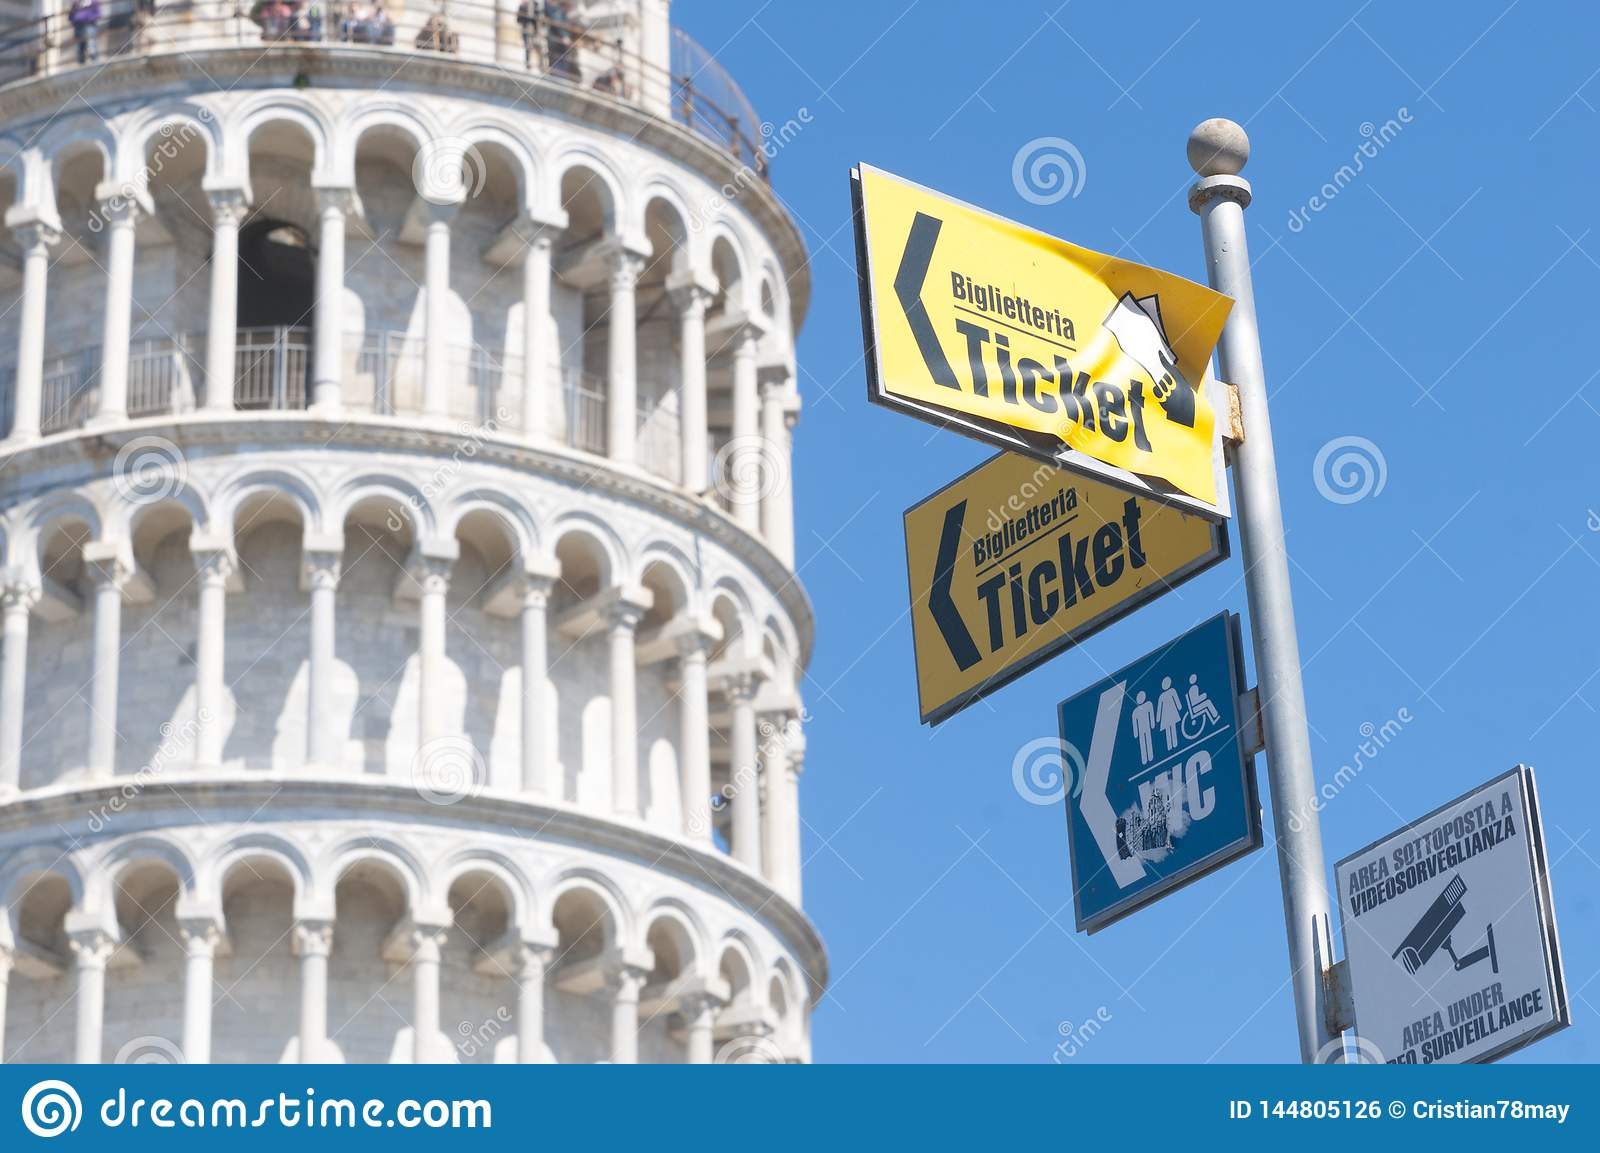 Detail of the leaning tower with directions to the ticket office, bathrooms and video surveillance notice